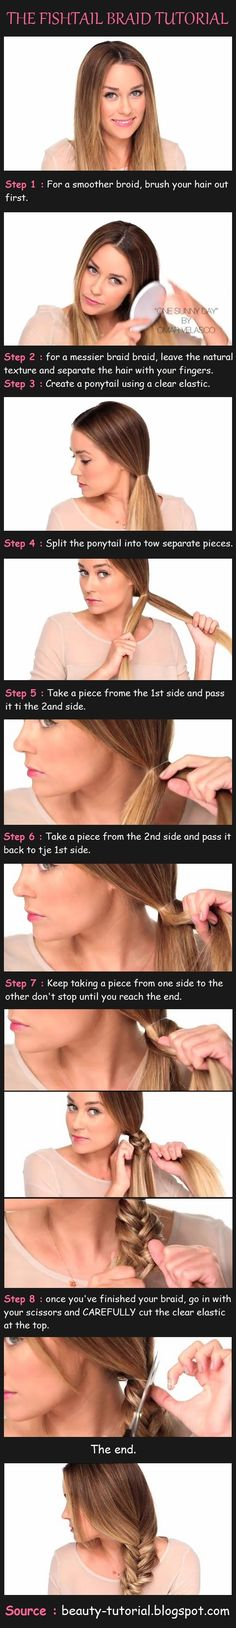 The Fishtail Braid Tutorial - This is how I learned to fishtail! It was actually her video on YouTube, but this is the same :)